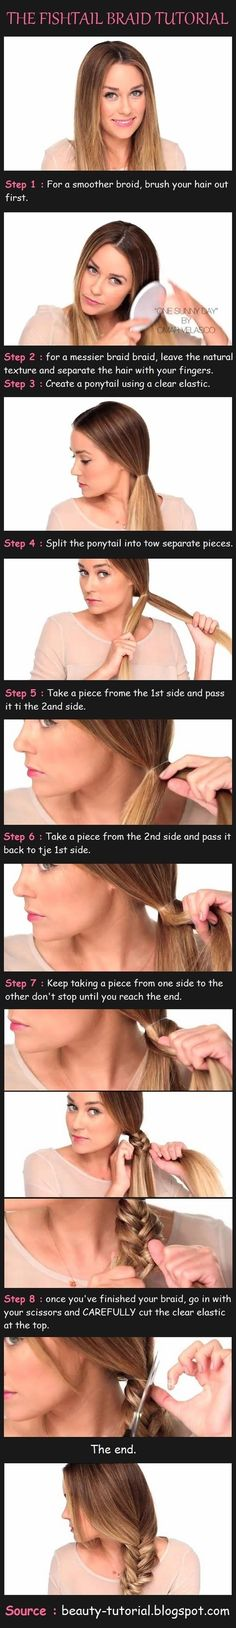 The Fishtail Braid Tutorial ! This is the first fish tail braid tutorial I actually understand ! Pretty Hairstyles, Braided Hairstyles, Latest Hairstyles, Wedding Hairstyles, Great Hair, Amazing Hair, Hair Dos, Hair Hacks, Hair Inspiration